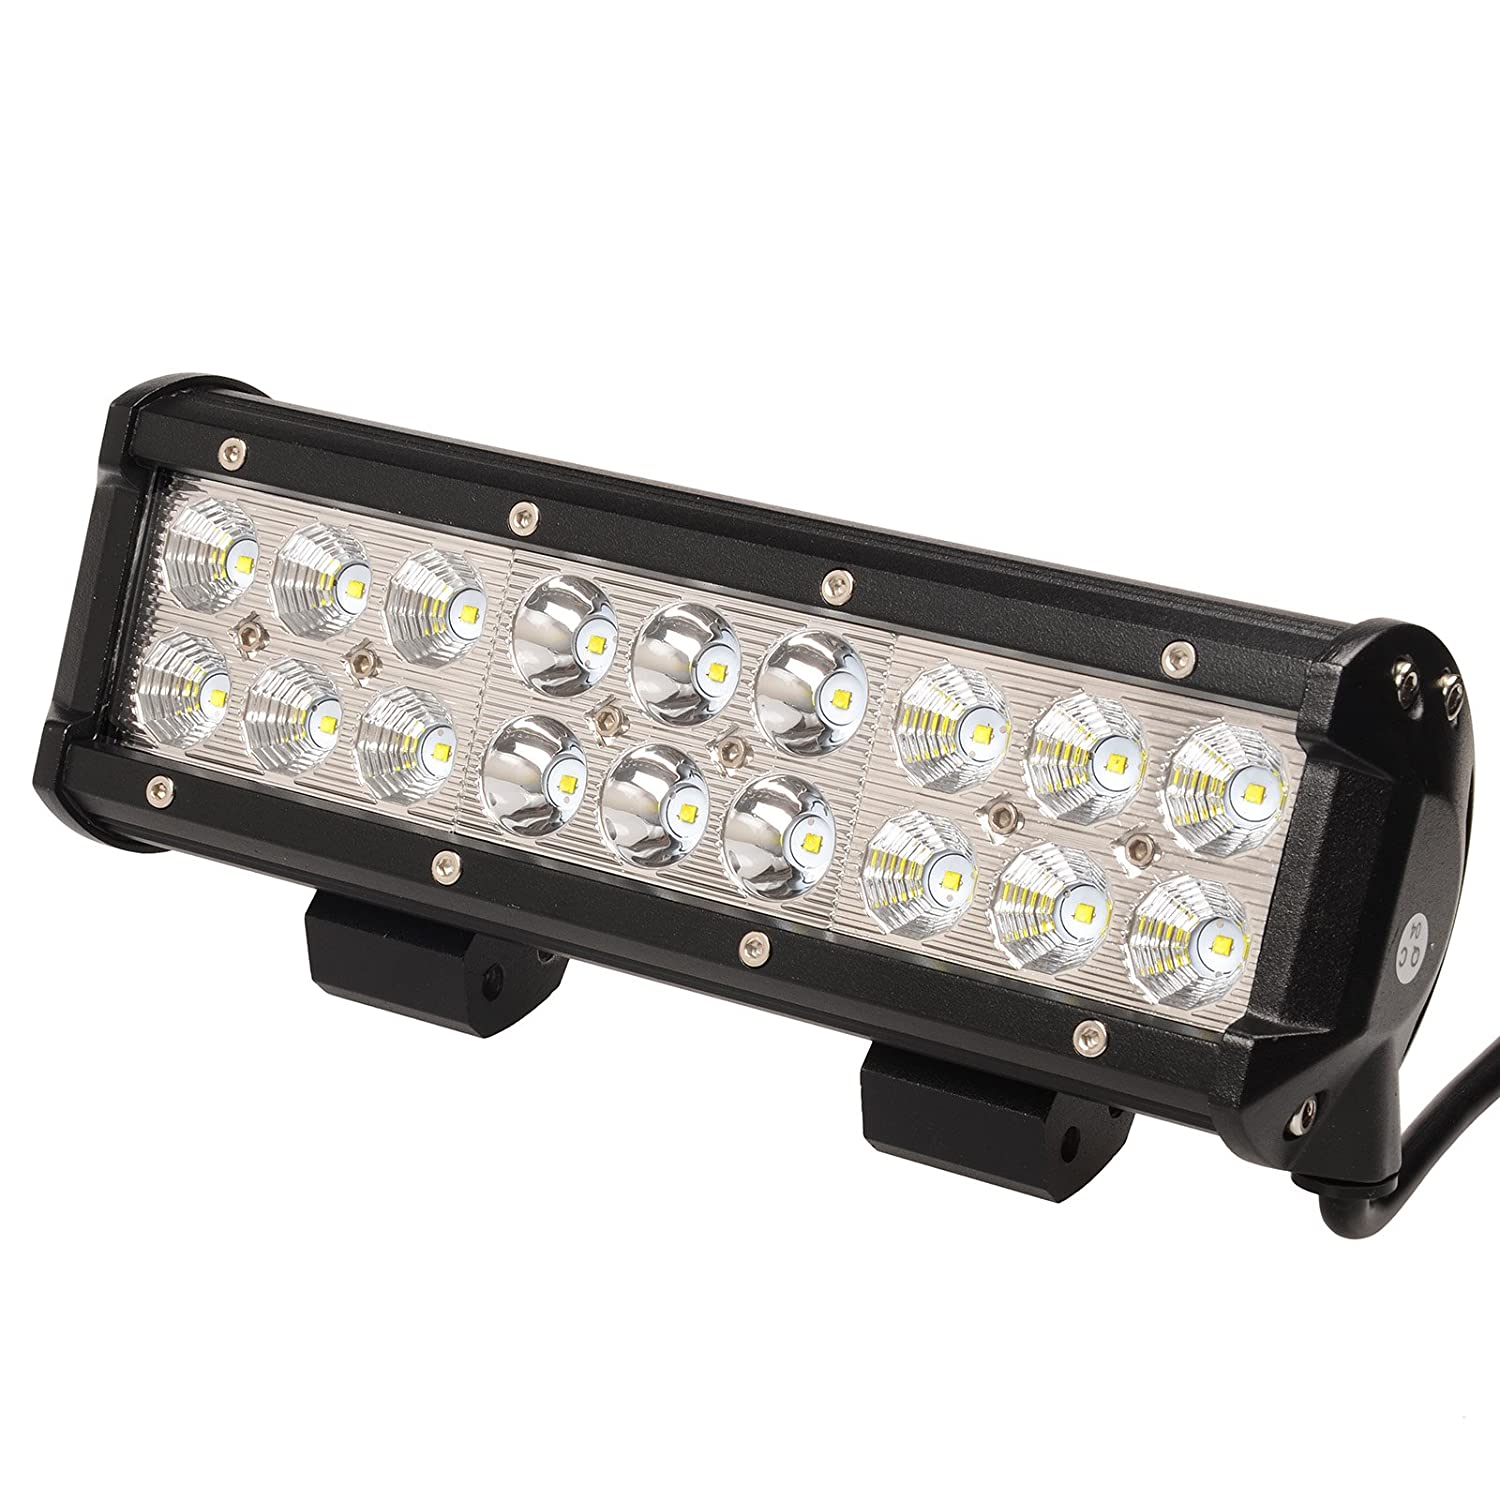 81xUiCulL0L._SL1500_ amazon com kawell led light bar 9 inch 54w 6000k spot flood combo  at soozxer.org